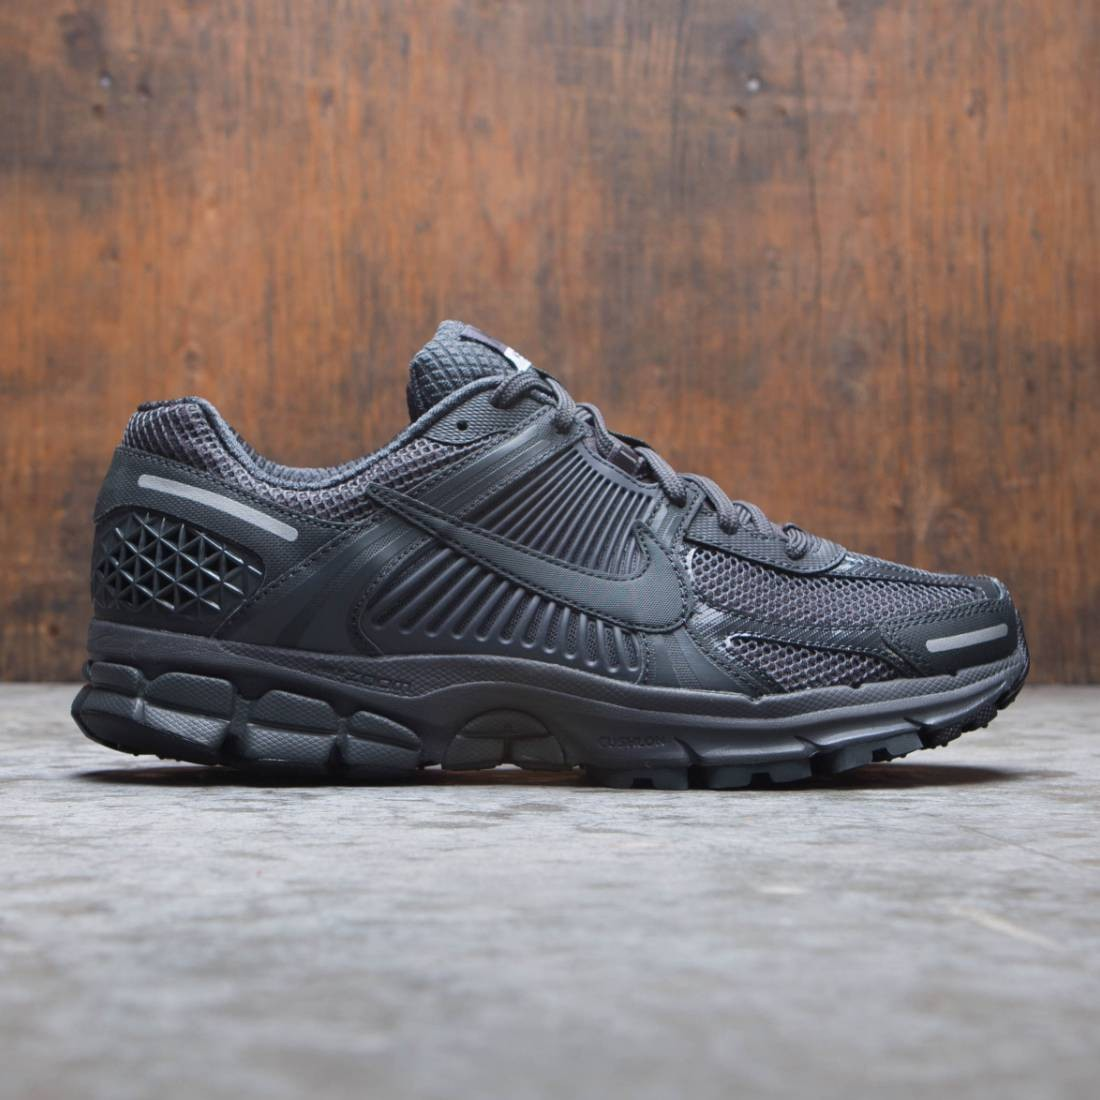 Nike Zoom Vomero 5 SP